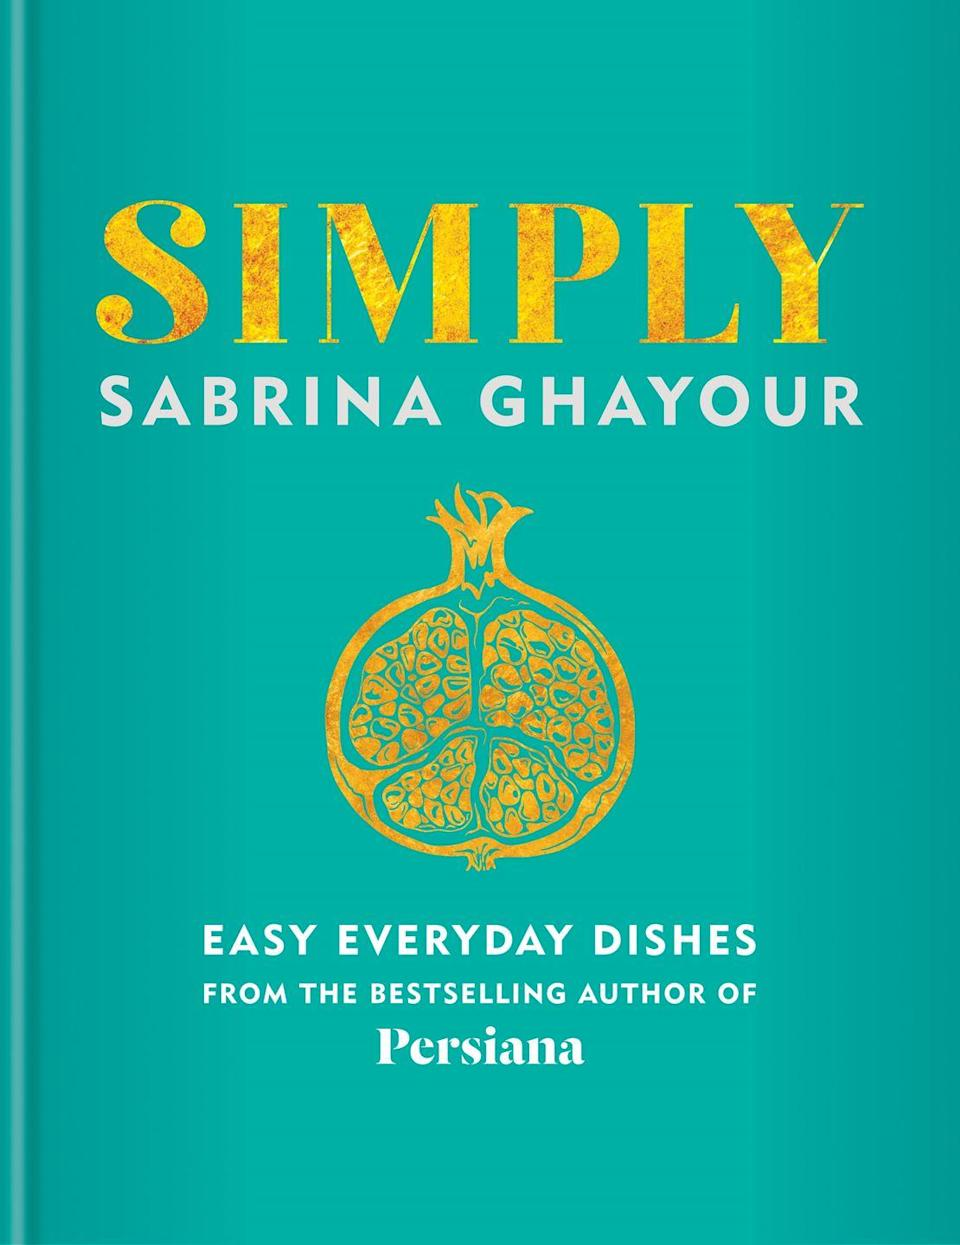 "<p>Maximum flavour with minimum fuss is the focal point of this new book by Sabrina Ghayour (the author of the widely celebrated Persiana), which has chapter names such as 'Effortless Eating' and 'Traditions with a Twist'. Simply provides more than 100 recipes that are bursting with zest and colourful flair, all inspired by Ghayour's Persian roots but adapted with an 'East meets West' approach to suit the modern-day cook. Try your hand at recreating dishes such as spiced pork wraps with green apple salsa, baked sweet potato and za'atar chips, and tahini, almond and orange brownies – just a few examples of the book's host of boldly flavoured recipes designed to spice up any occasion.</p><p><a href=""https://www.amazon.co.uk/Simply-everyday-dishes-bestselling-Persiana/dp/1784725161"" rel=""nofollow noopener"" target=""_blank"" data-ylk=""slk:'Simply' by Sabrina Ghayour"" class=""link rapid-noclick-resp"">'Simply' by Sabrina Ghayour</a> (£26, Mitchell Beazley) is out now.</p>"